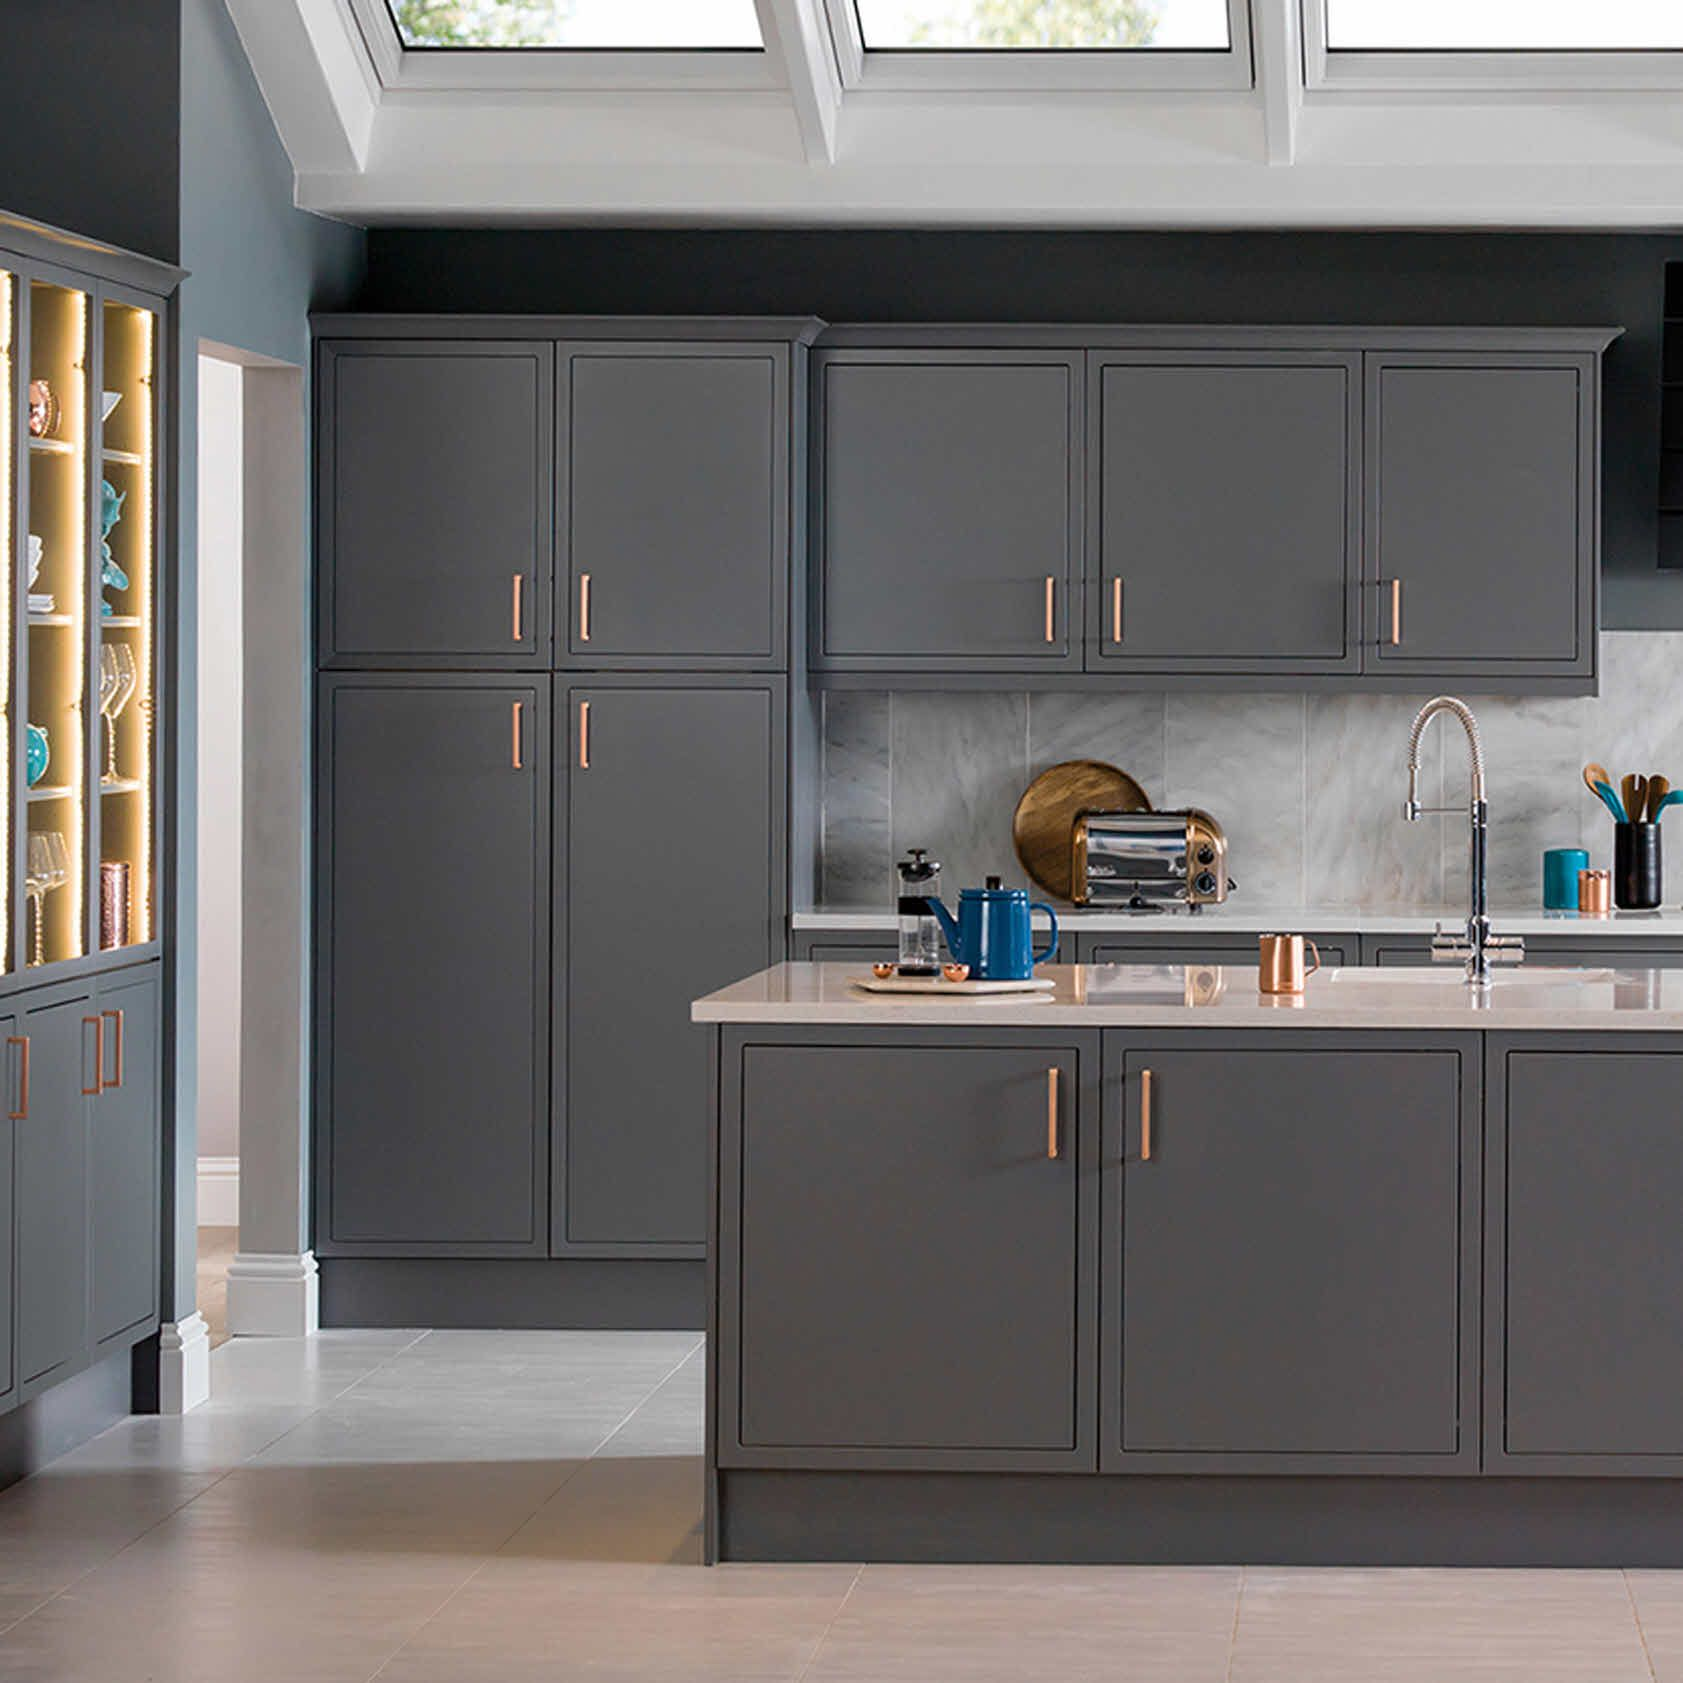 Grey kitchen modern kitchen london by lwk kitchens london - The Dark Grey Kitchen With The Copper Handles Works Perfectly And I Love The Light Coming In From Windows In The Vaulted Ceiling